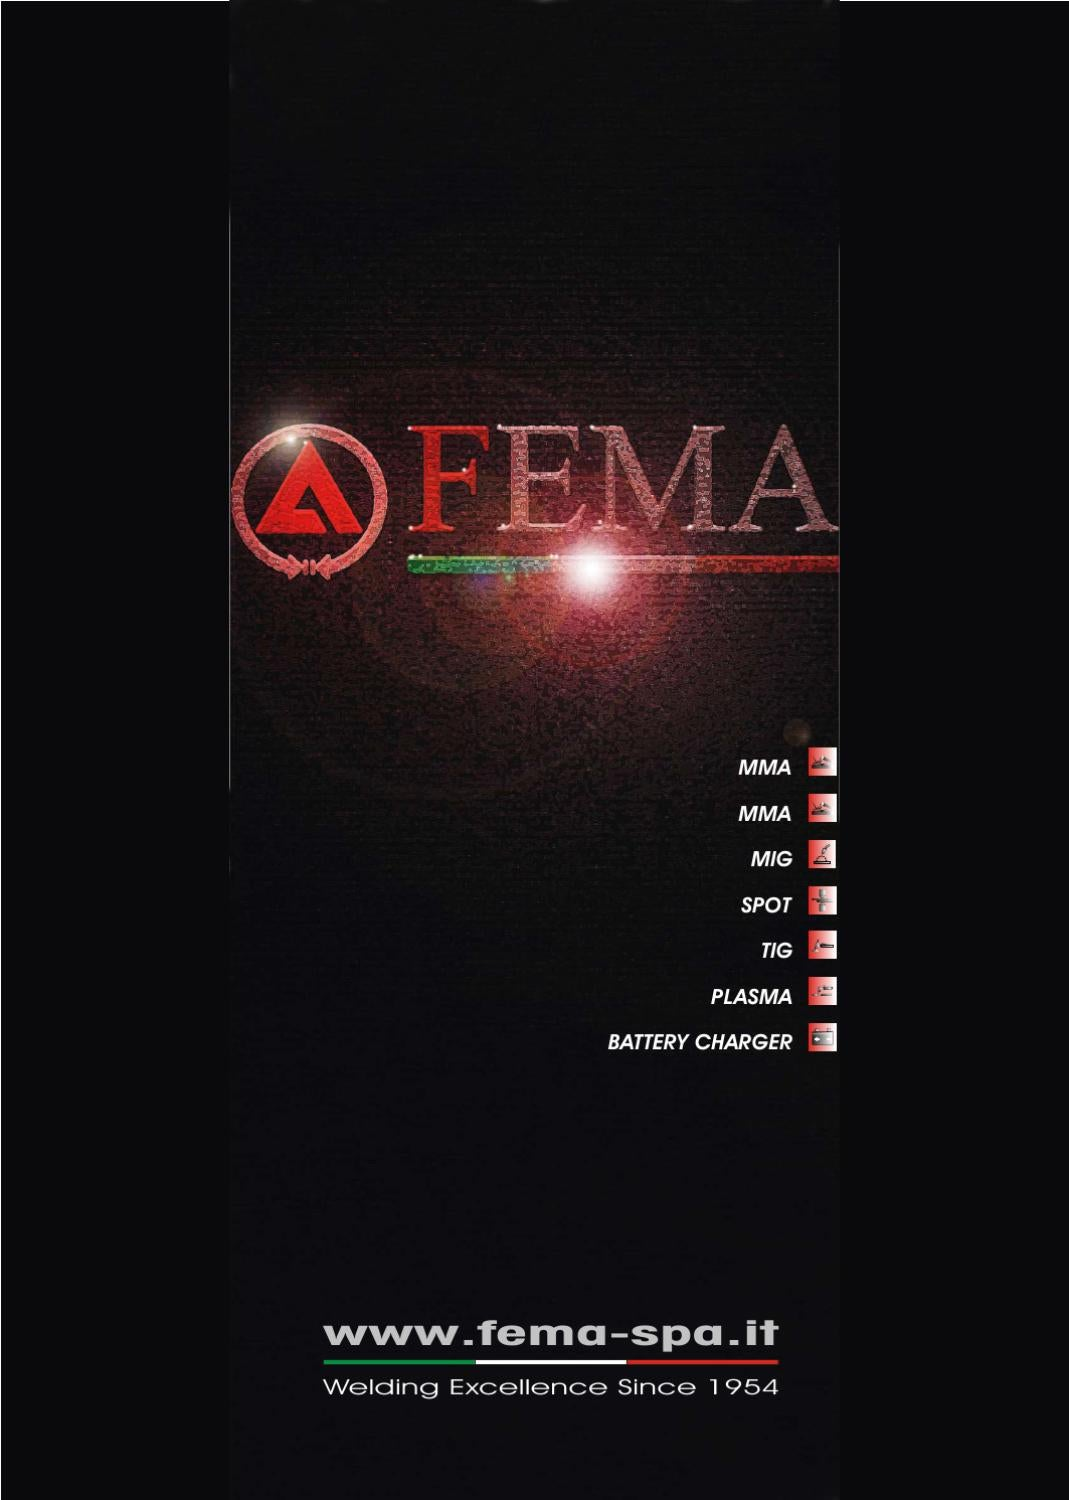 Fema Catalogue by M.C. Marketing e Comunicazione S.r.l. - issuu